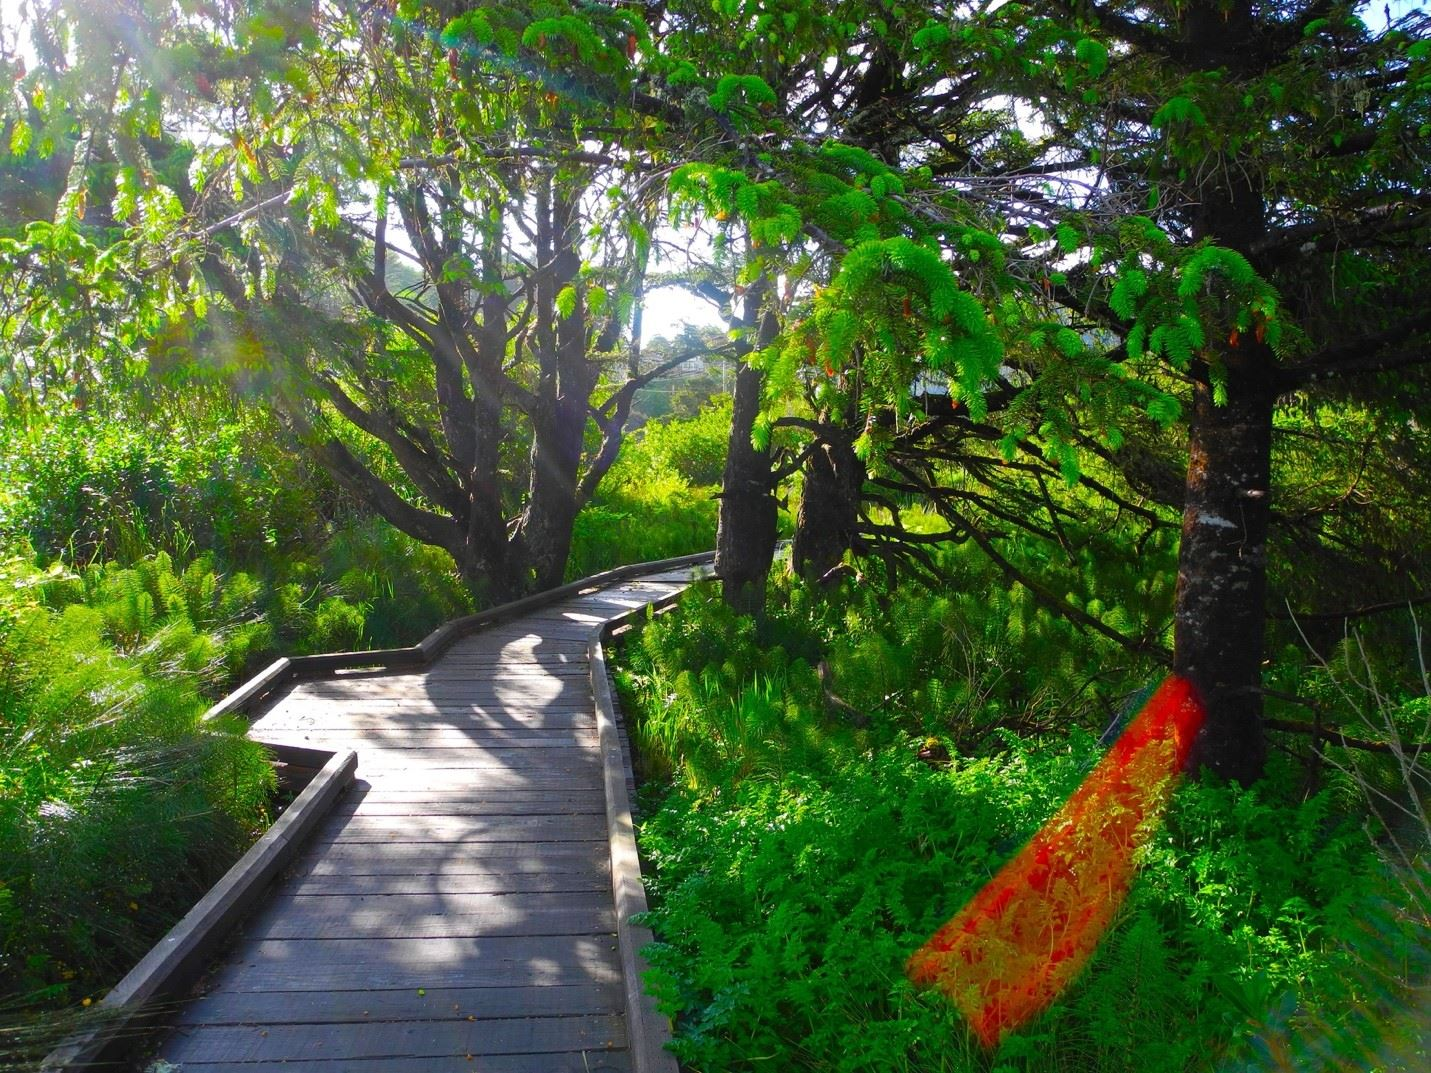 Boardwalk Path Through Green Trees and Foliage